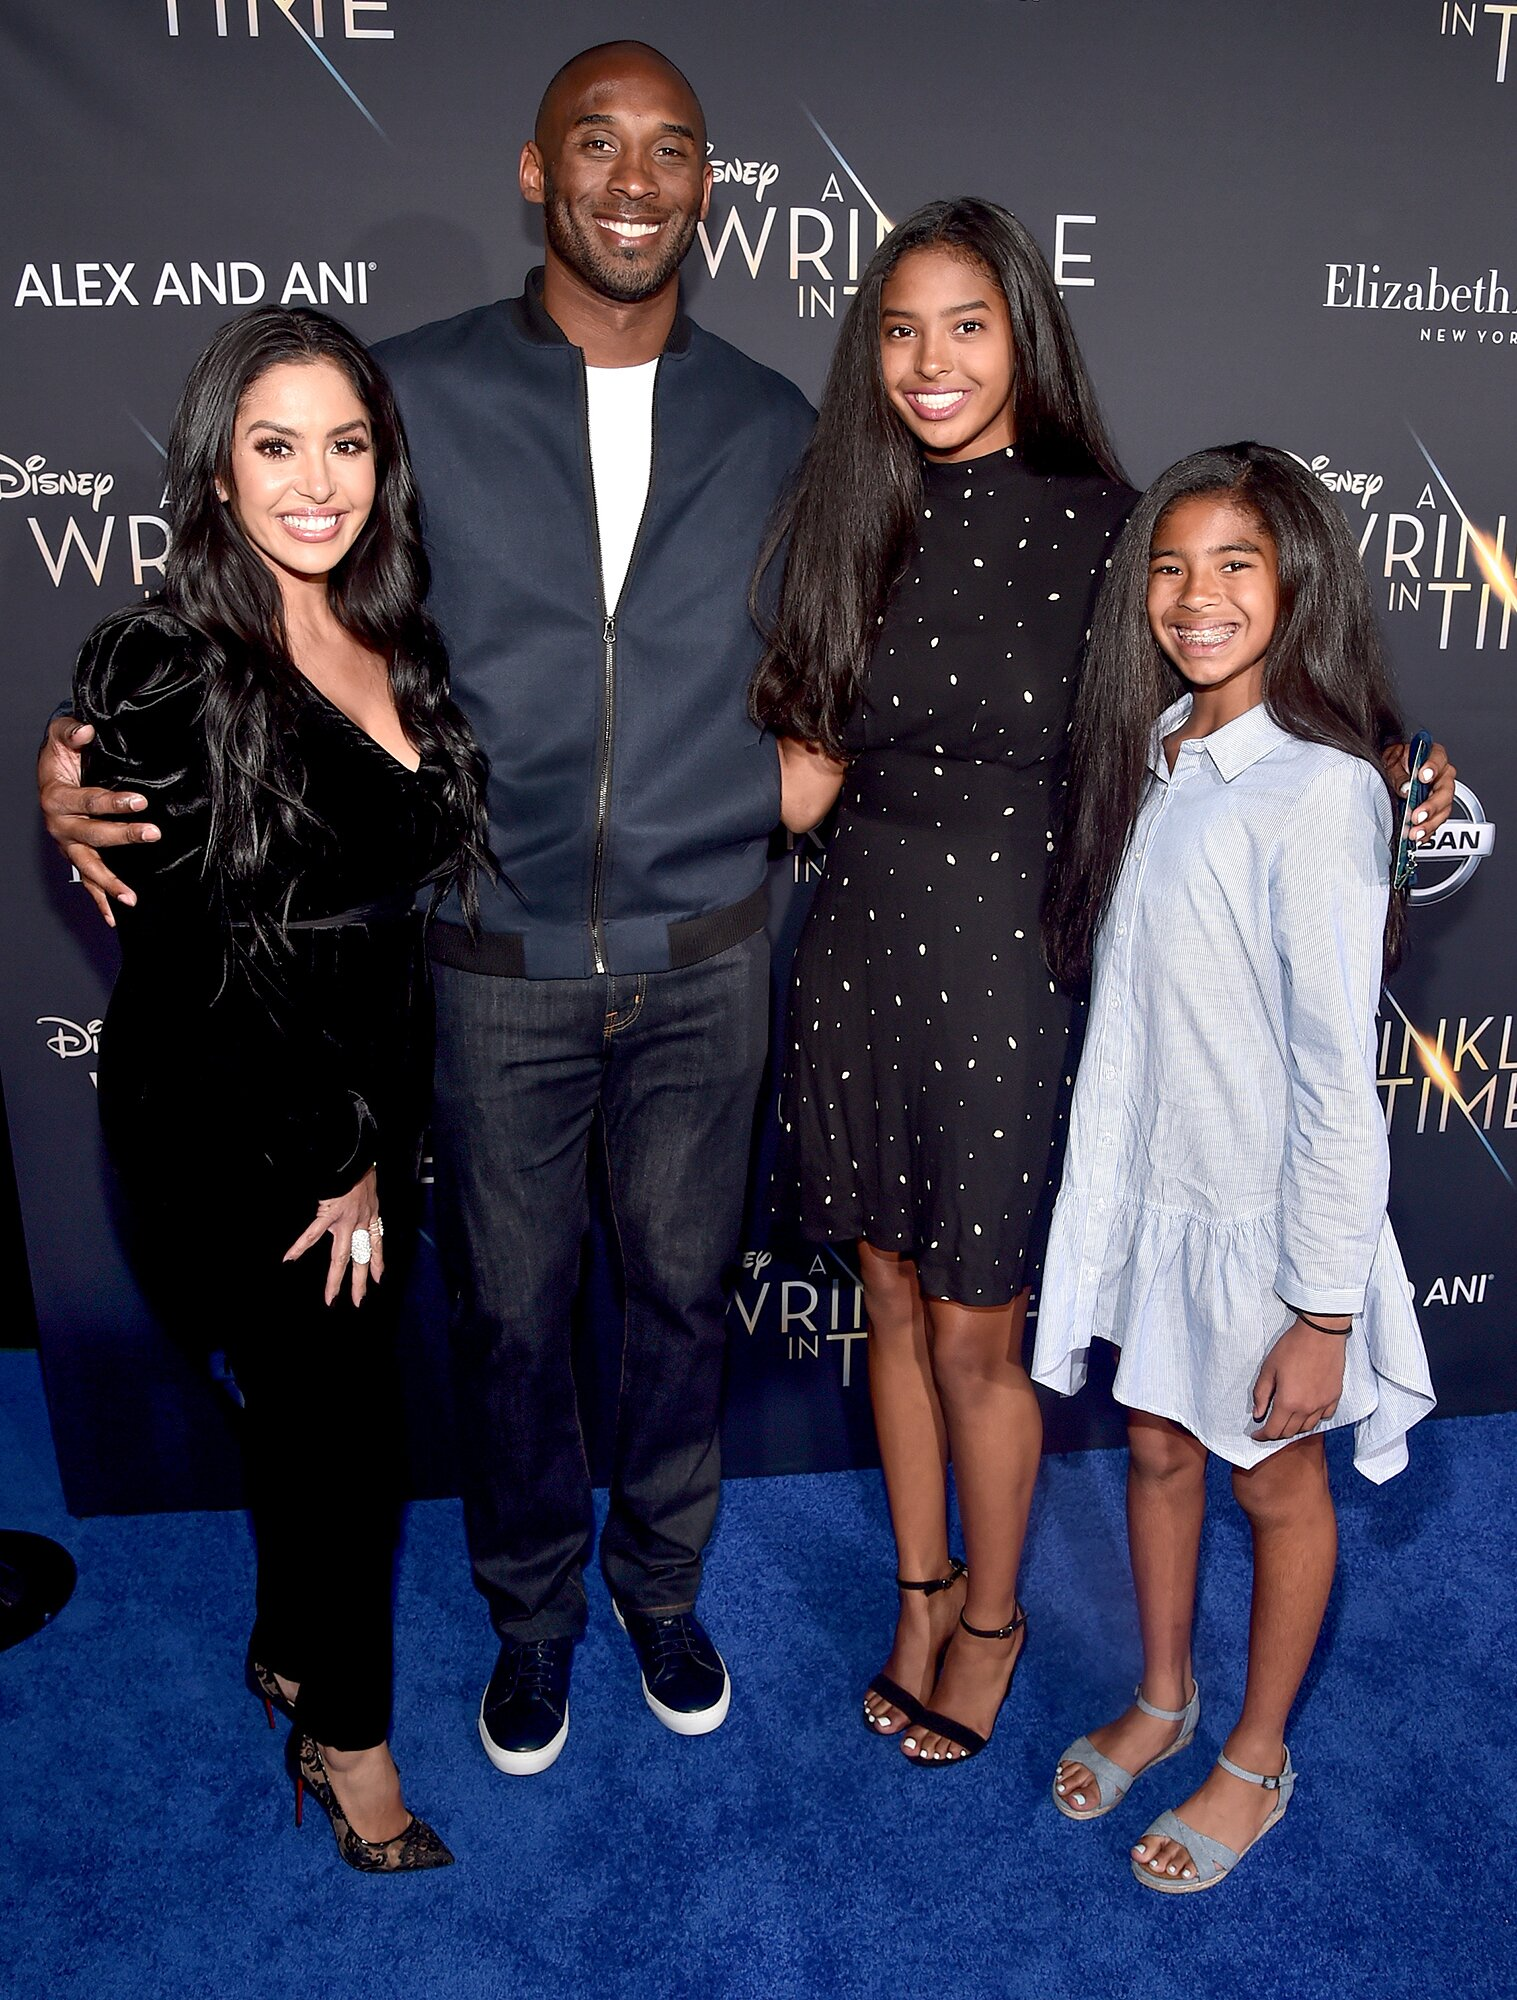 Vanessa Bryant Says Late Husband Kobe Bryant Would Have Been 'So Proud' as Book Becomes Best Seller